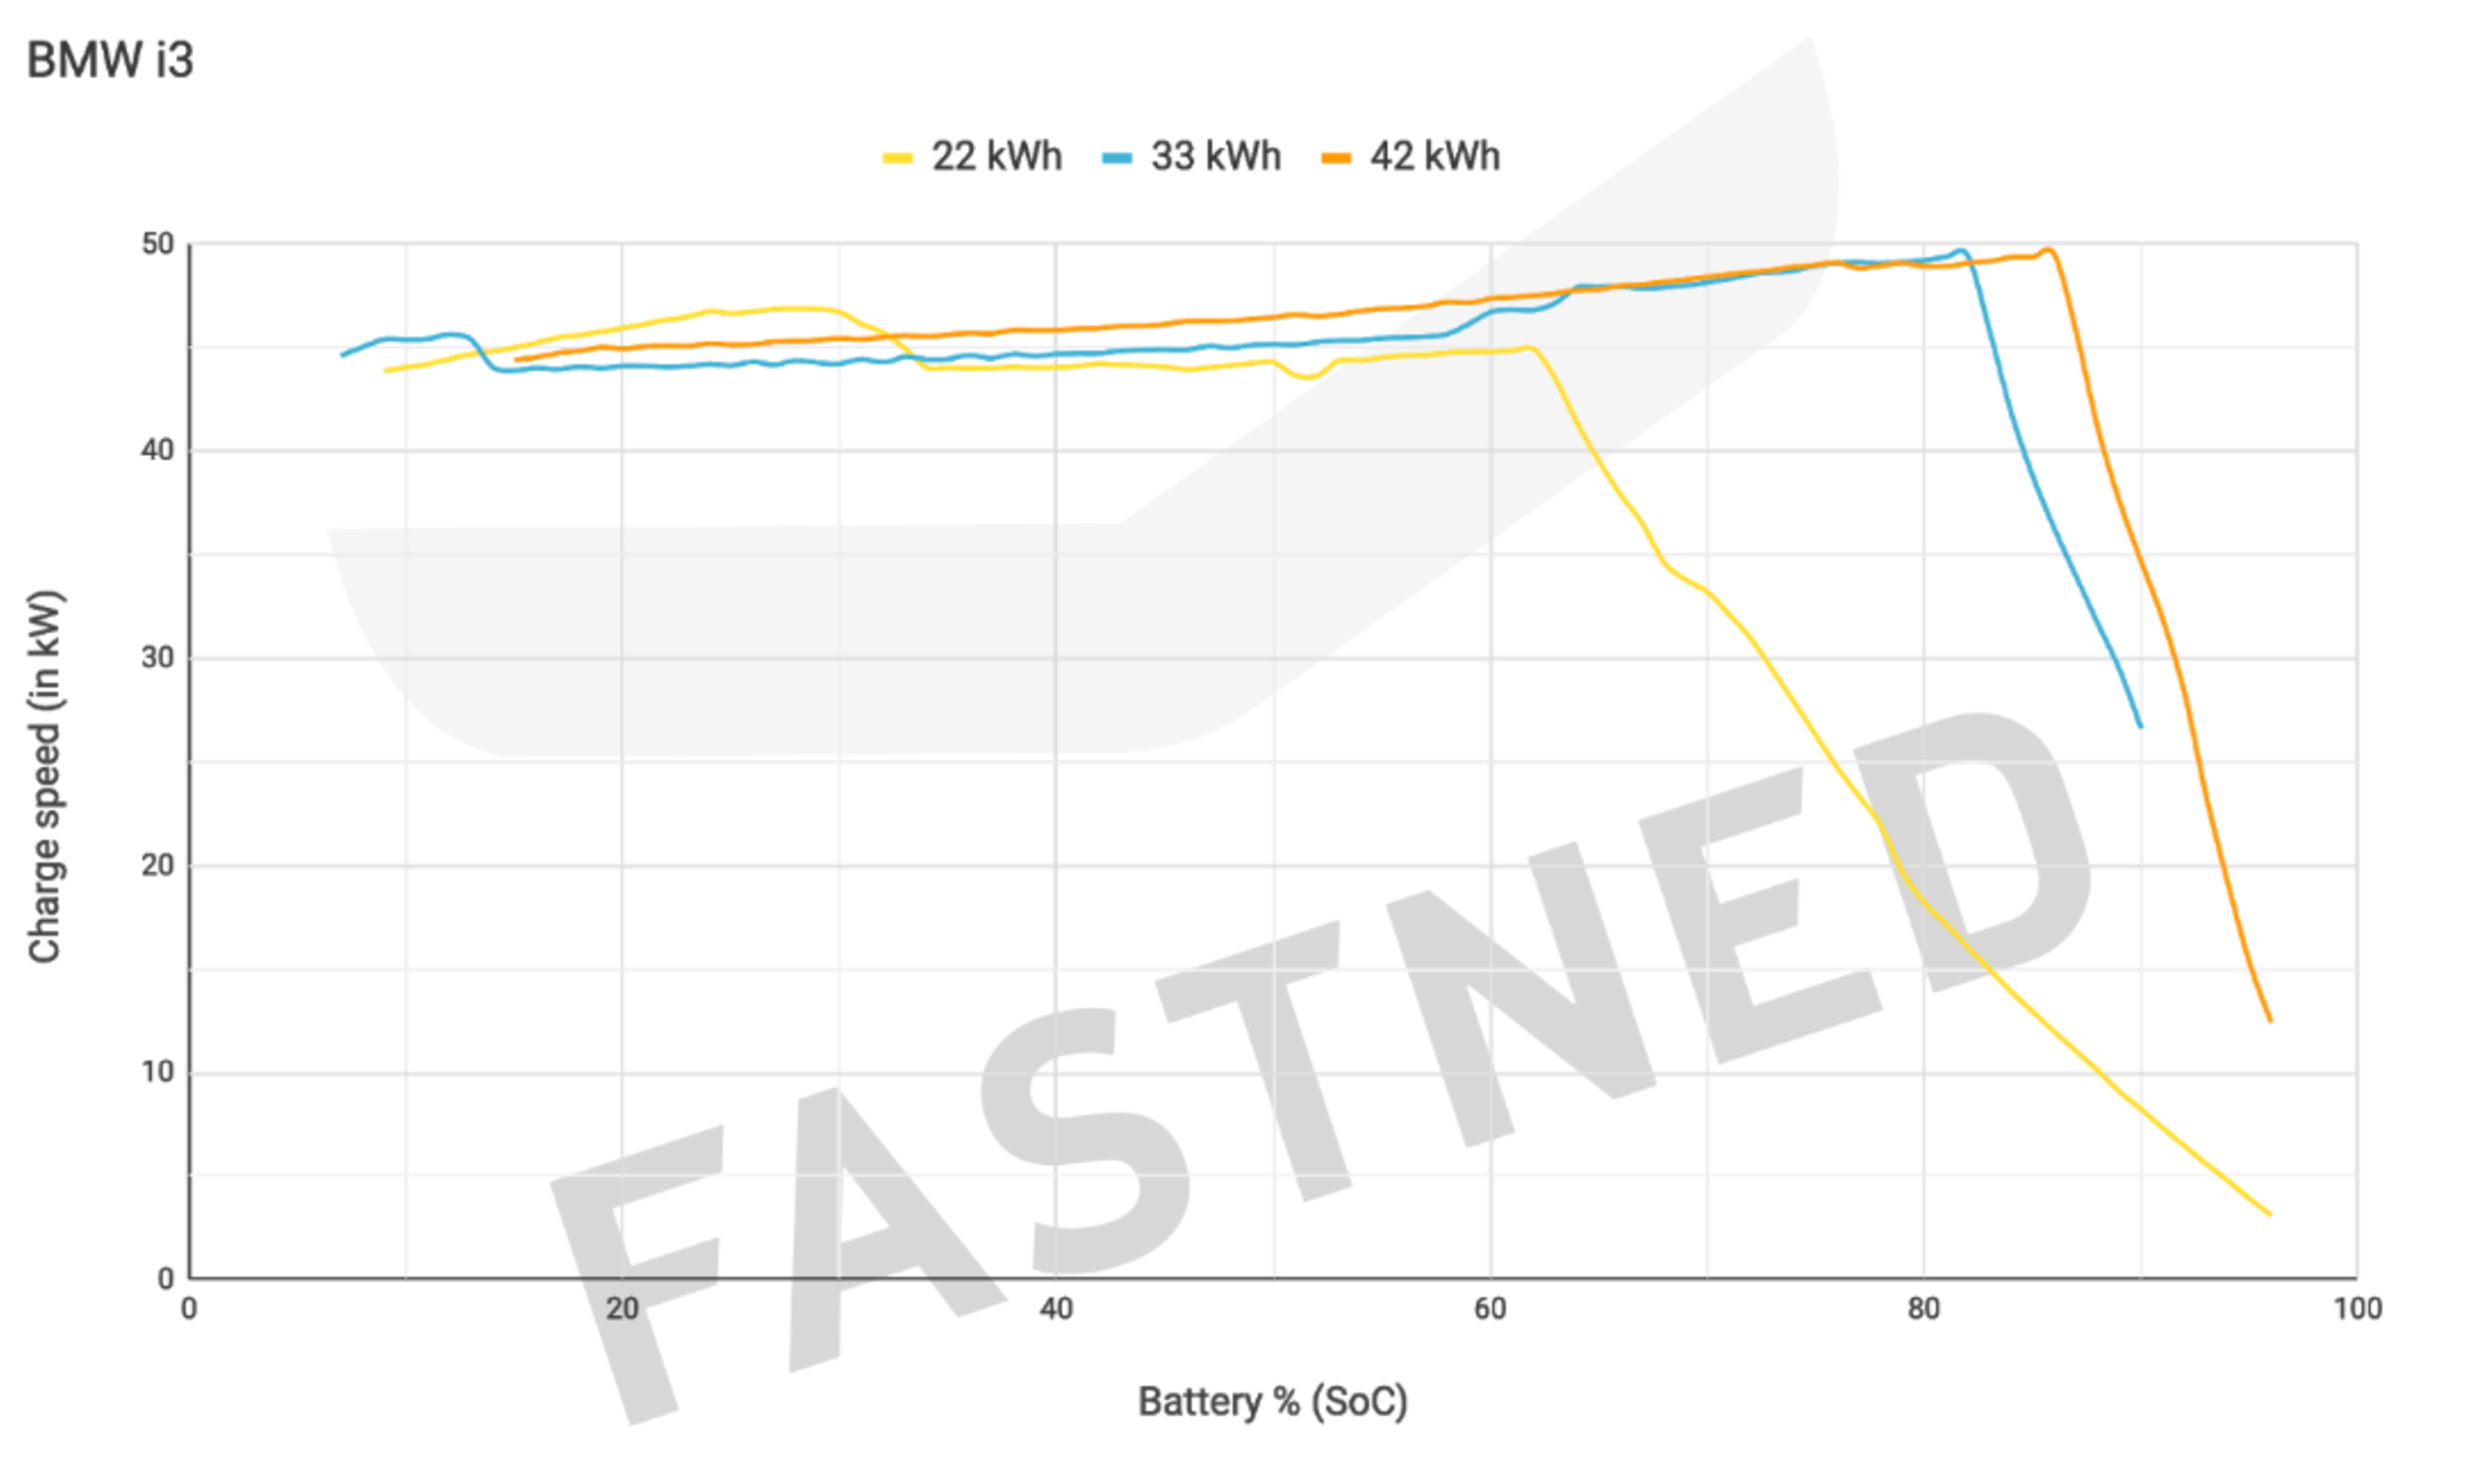 graph showing relationship between electric car battery and charge speed